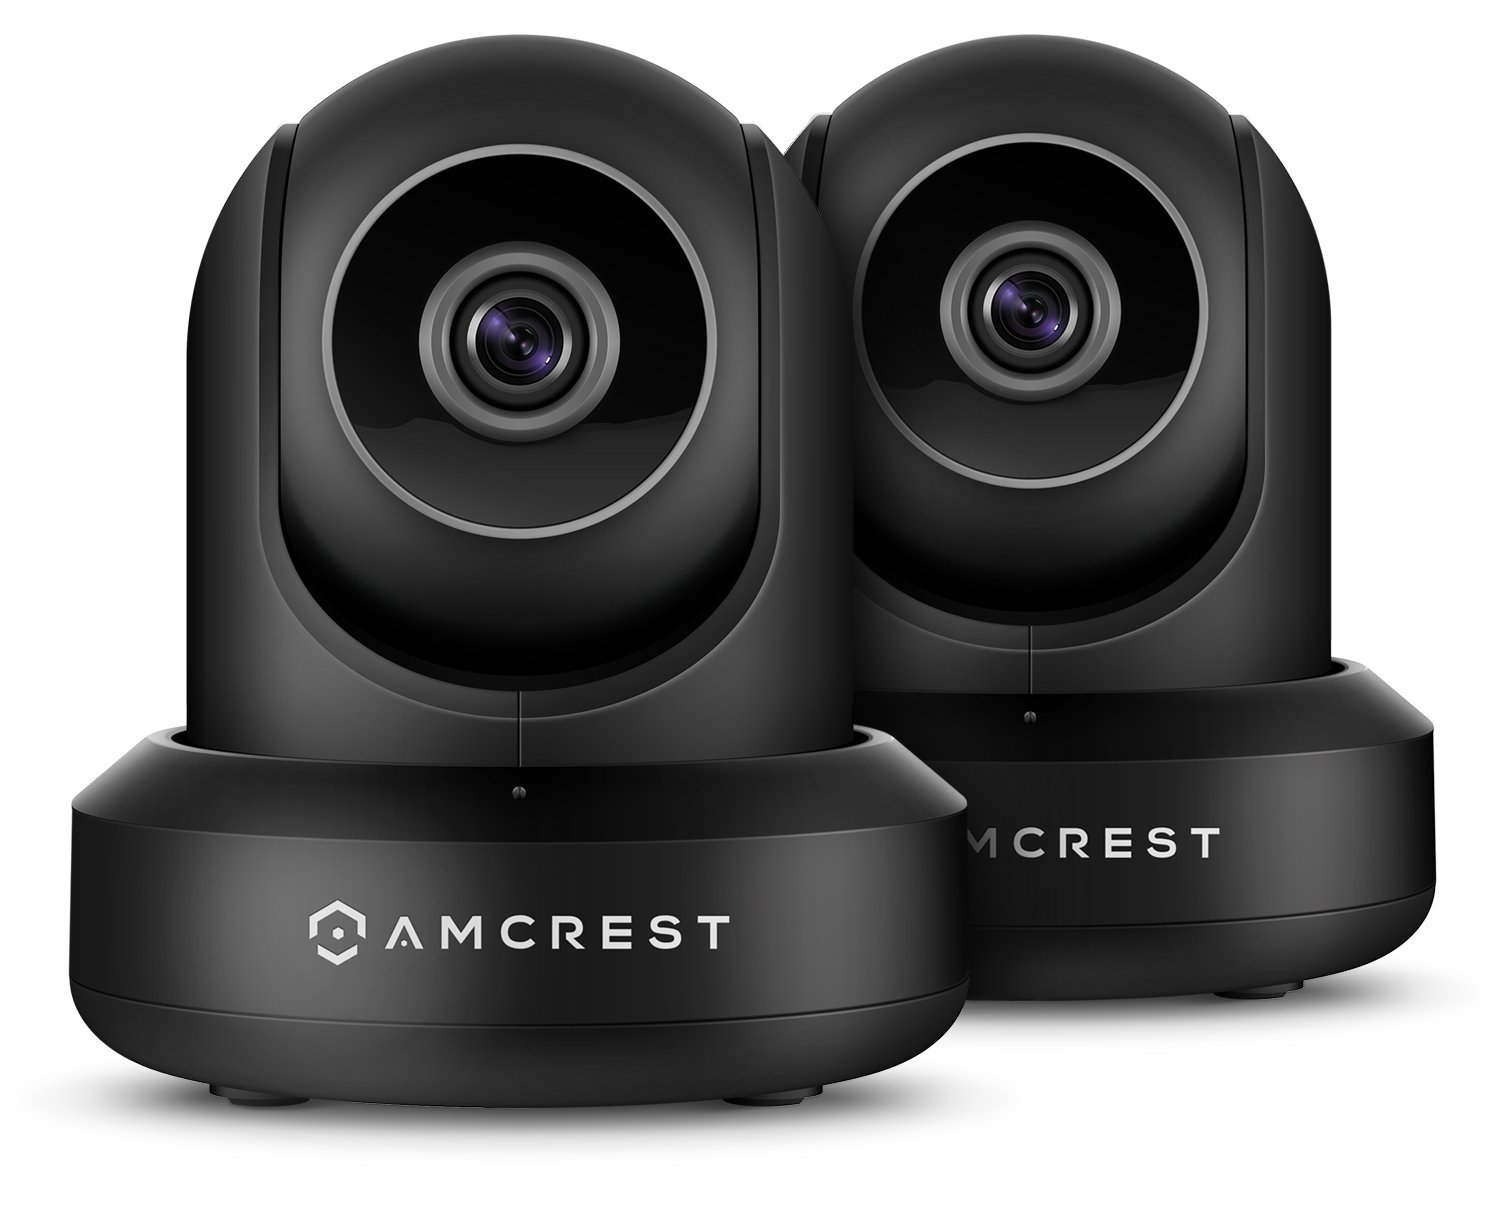 Amcrest 2-Pack 1080p WiFi Camera Indoor, 2MP Pan/Tilt Home Security Camera, Auto-Tracking, Motion & Audio Detection, Enhanced Browser Compatibility, H.265, Two-Way Talk 2PACK-IP2M-841B-V3 (Black)